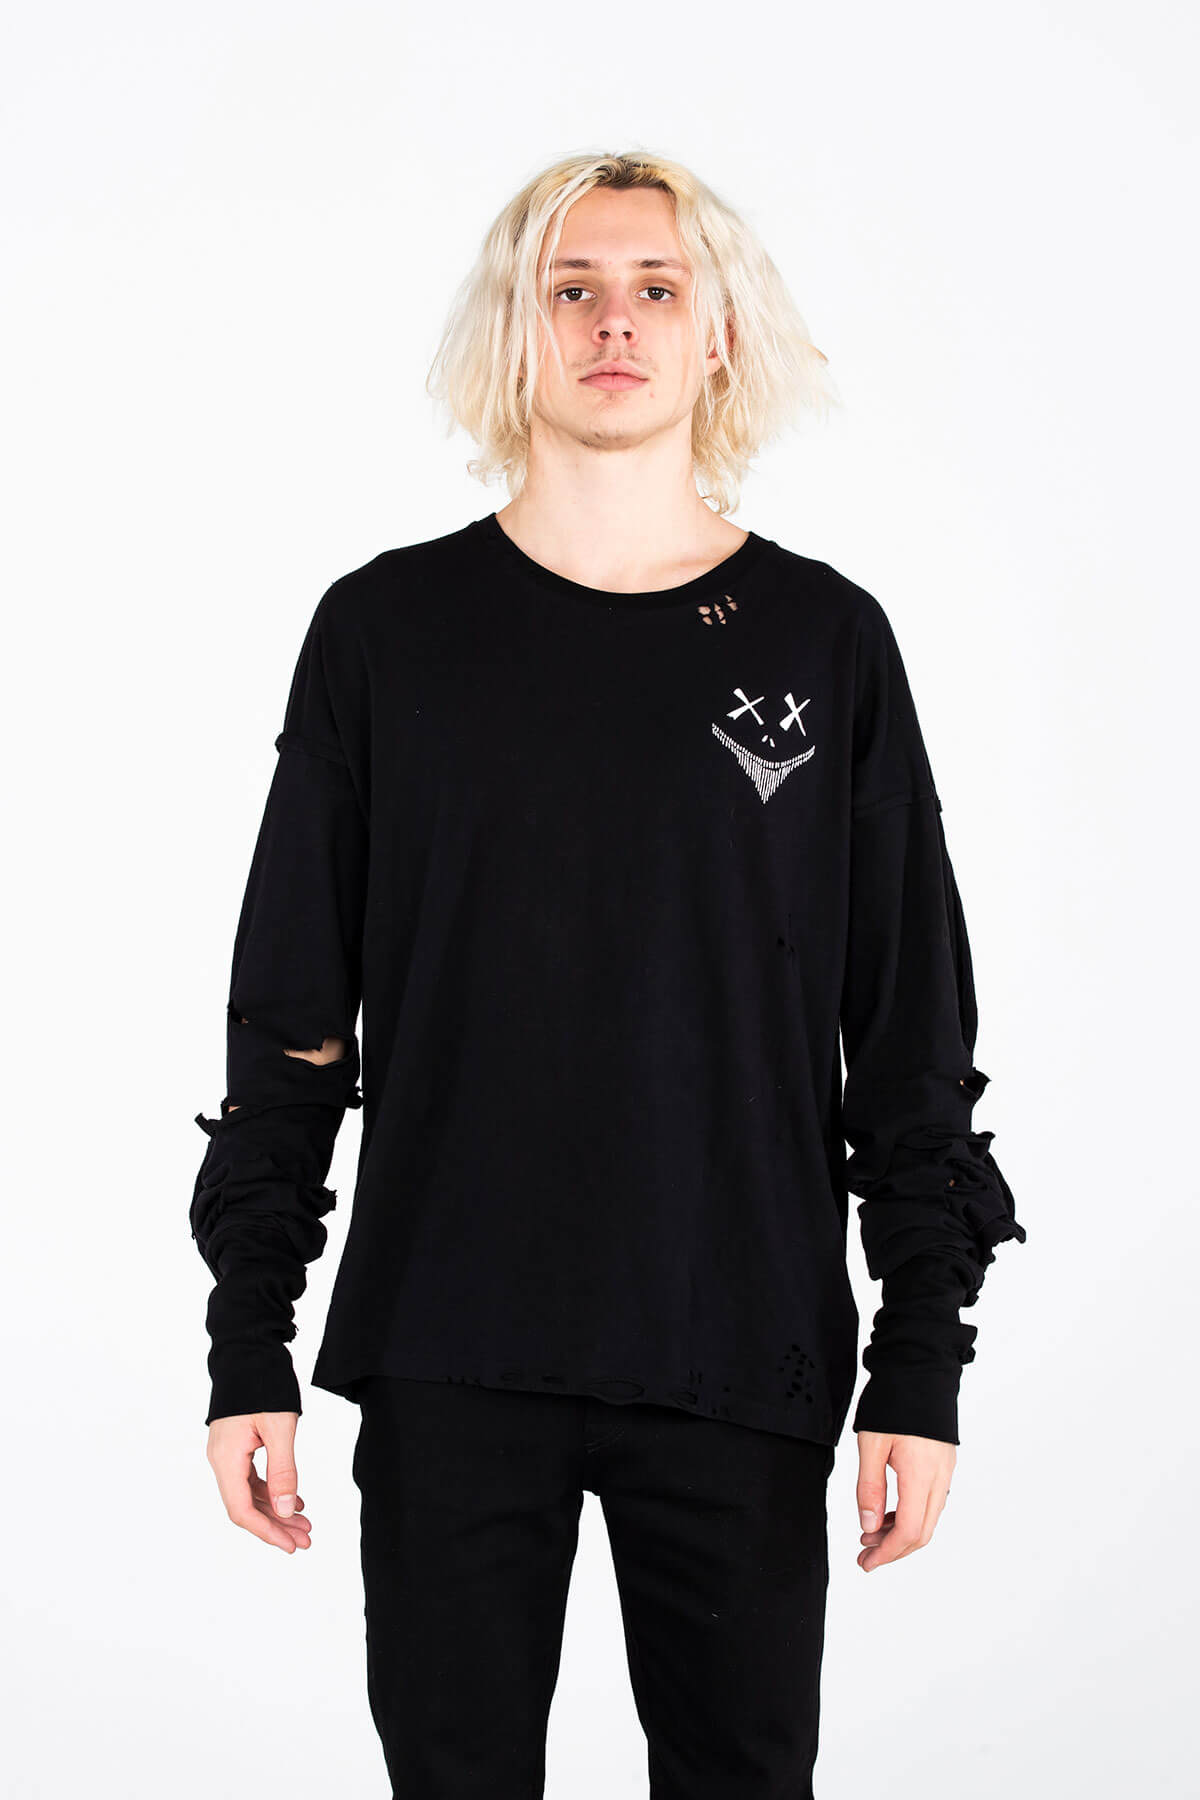 MAGNA CORNICES LONG SLEEVE T SHIRT – SILK SCREEN PRINT - ARCHIVE TOP - MJB